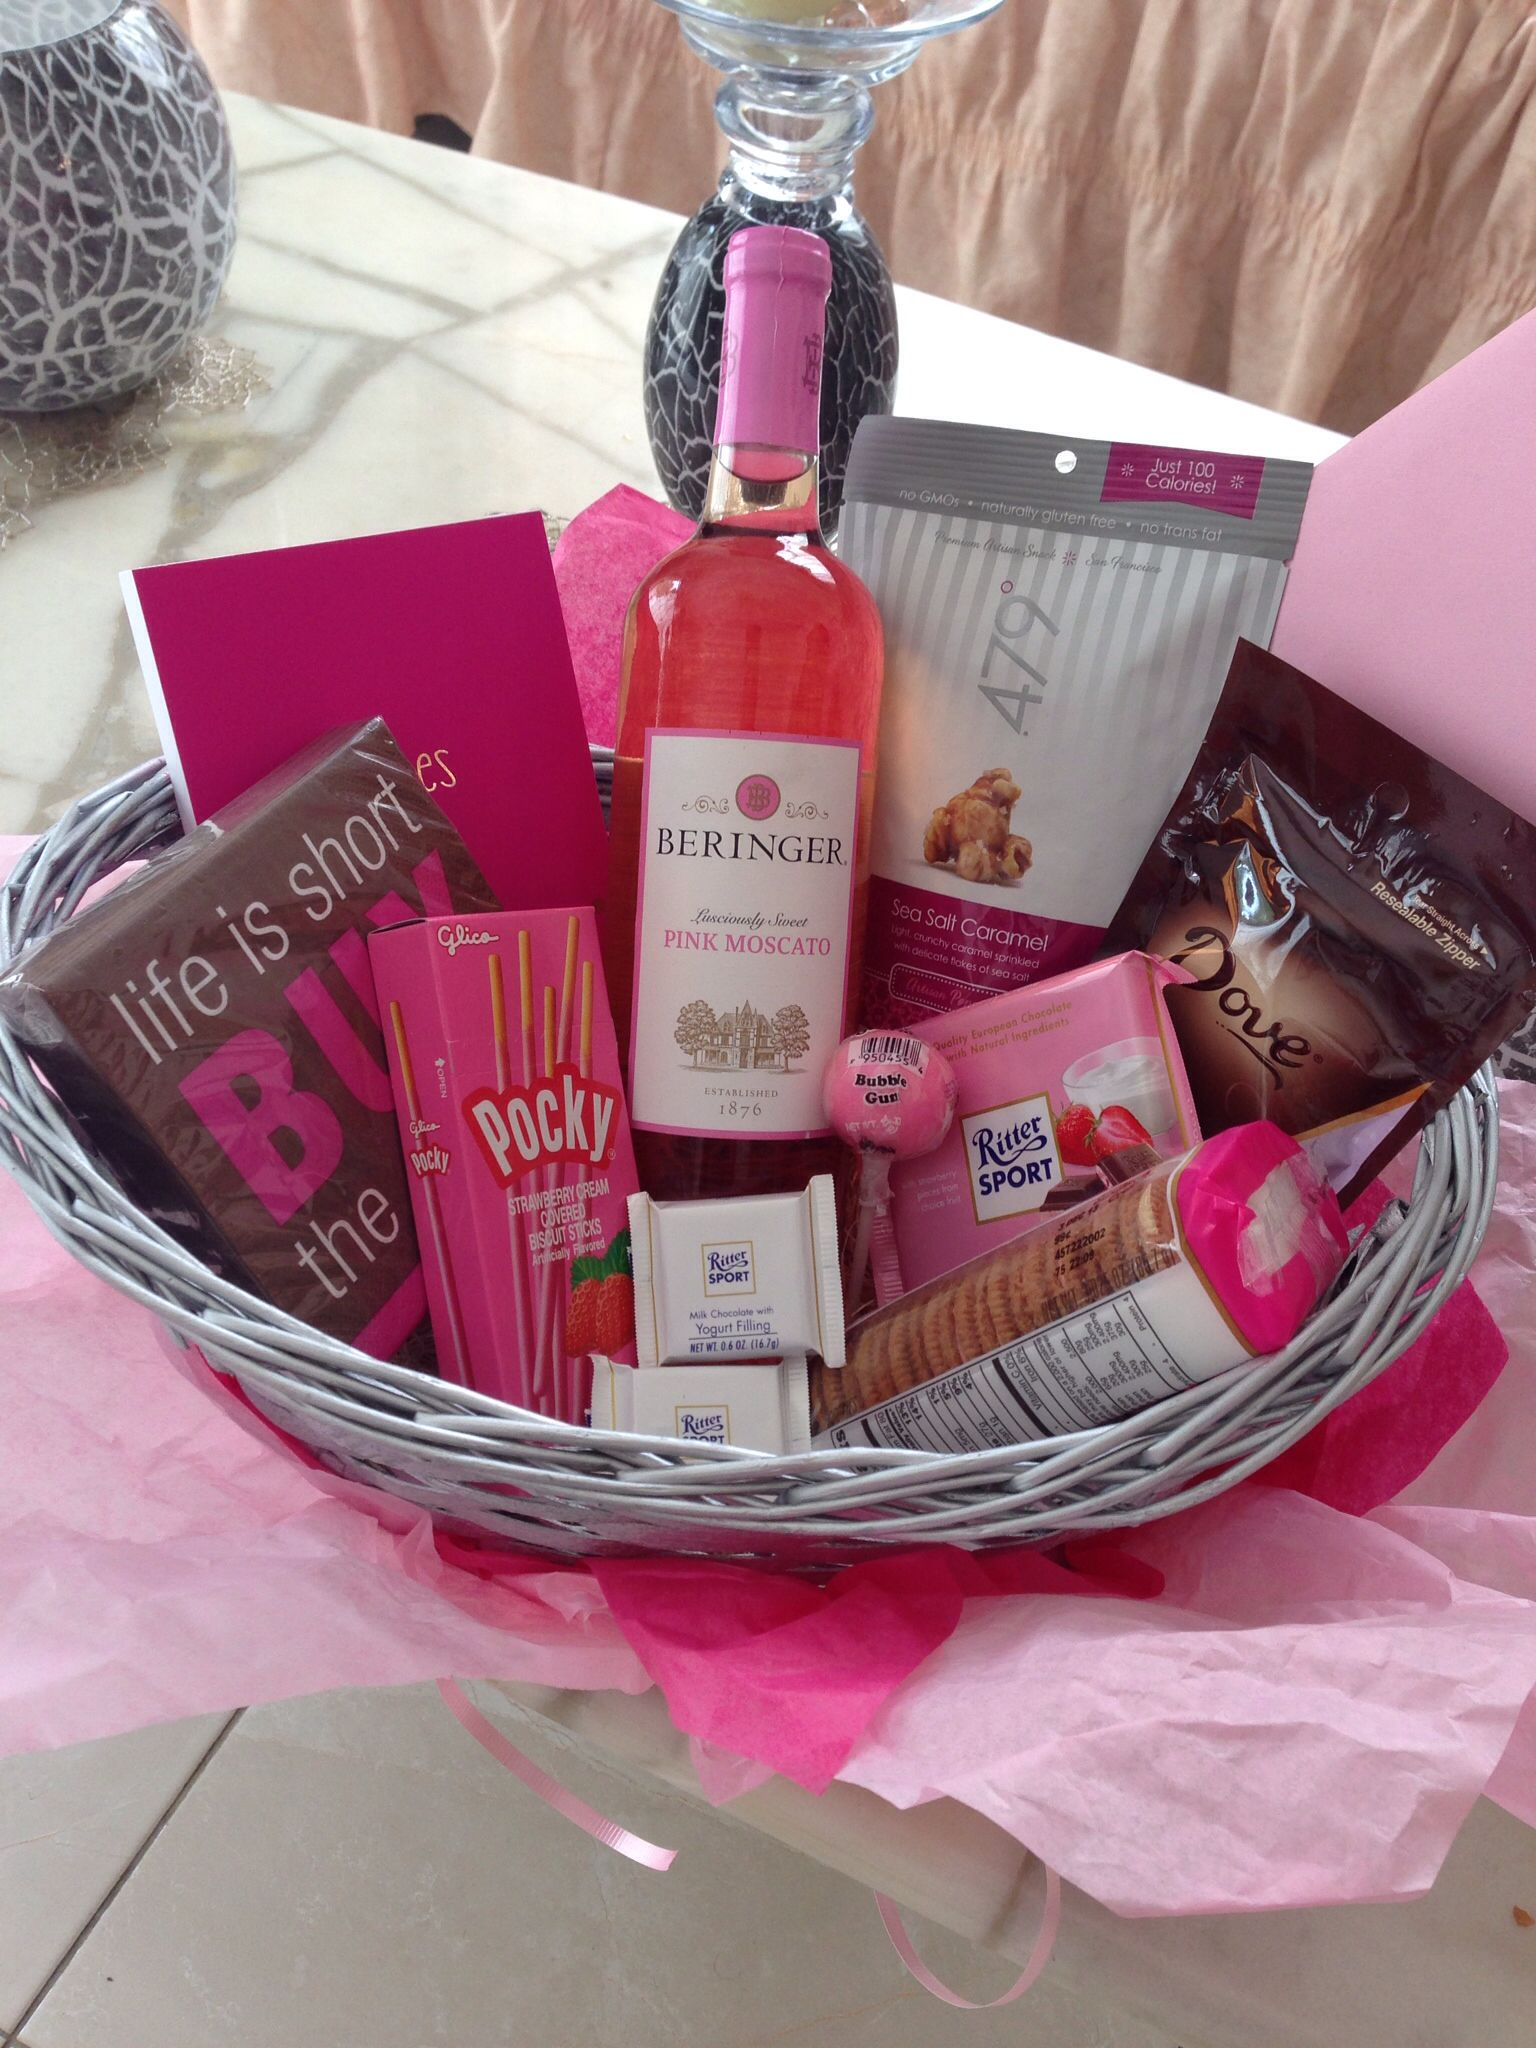 The Best Friend Basket With Pink Moscato Homemade Gifts Diy Gift